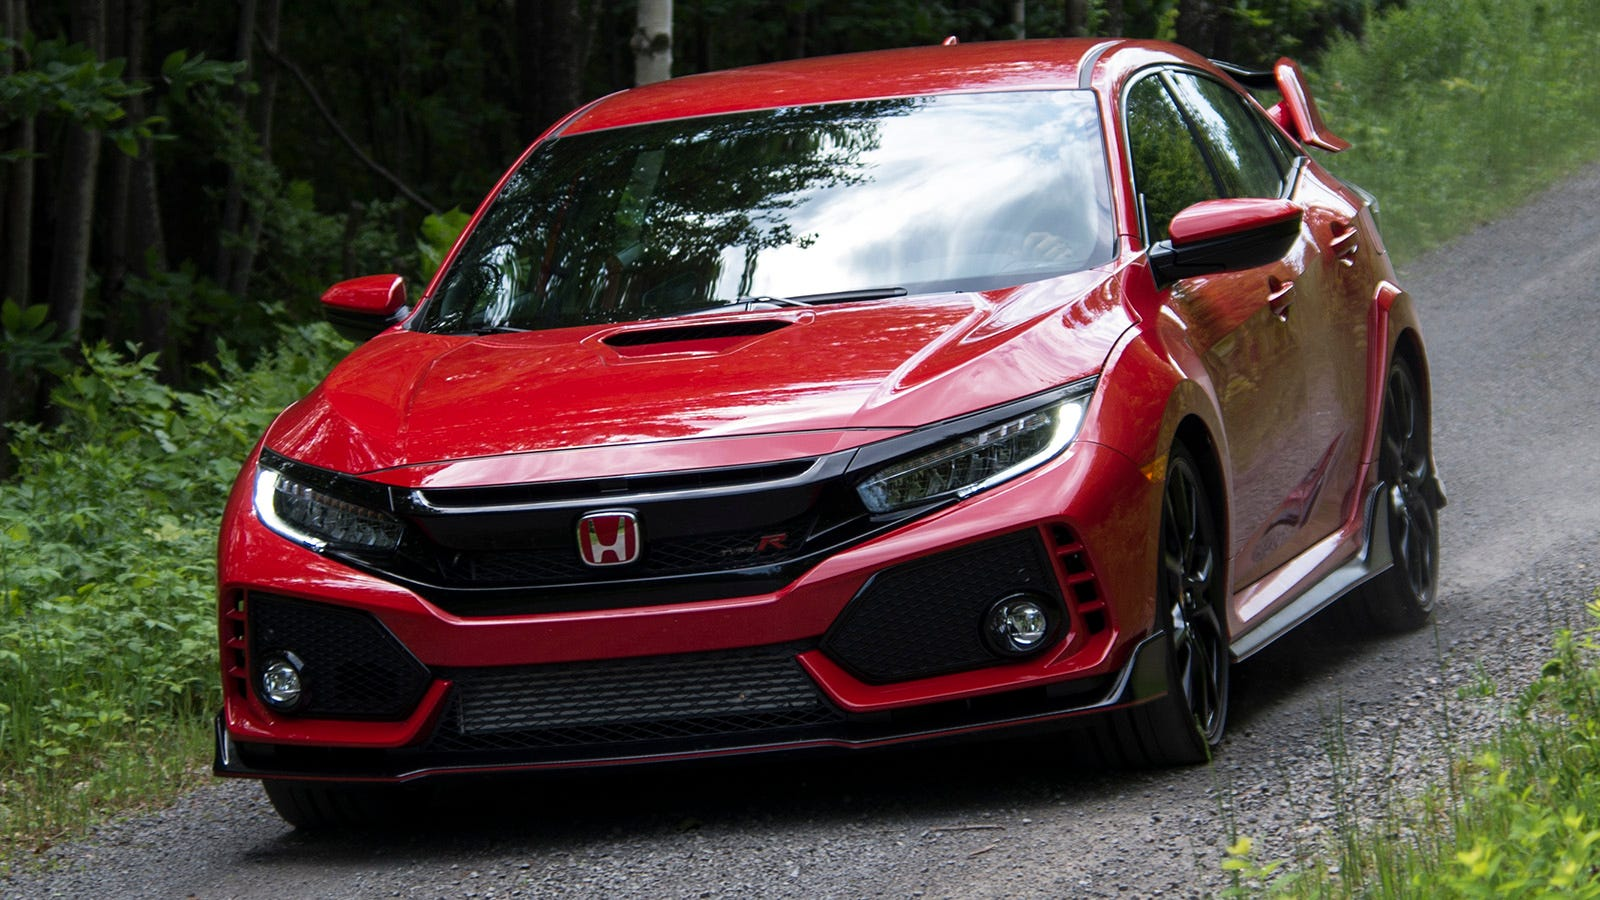 Honda May Soon Offer A Cheaper Civic Type R: Report